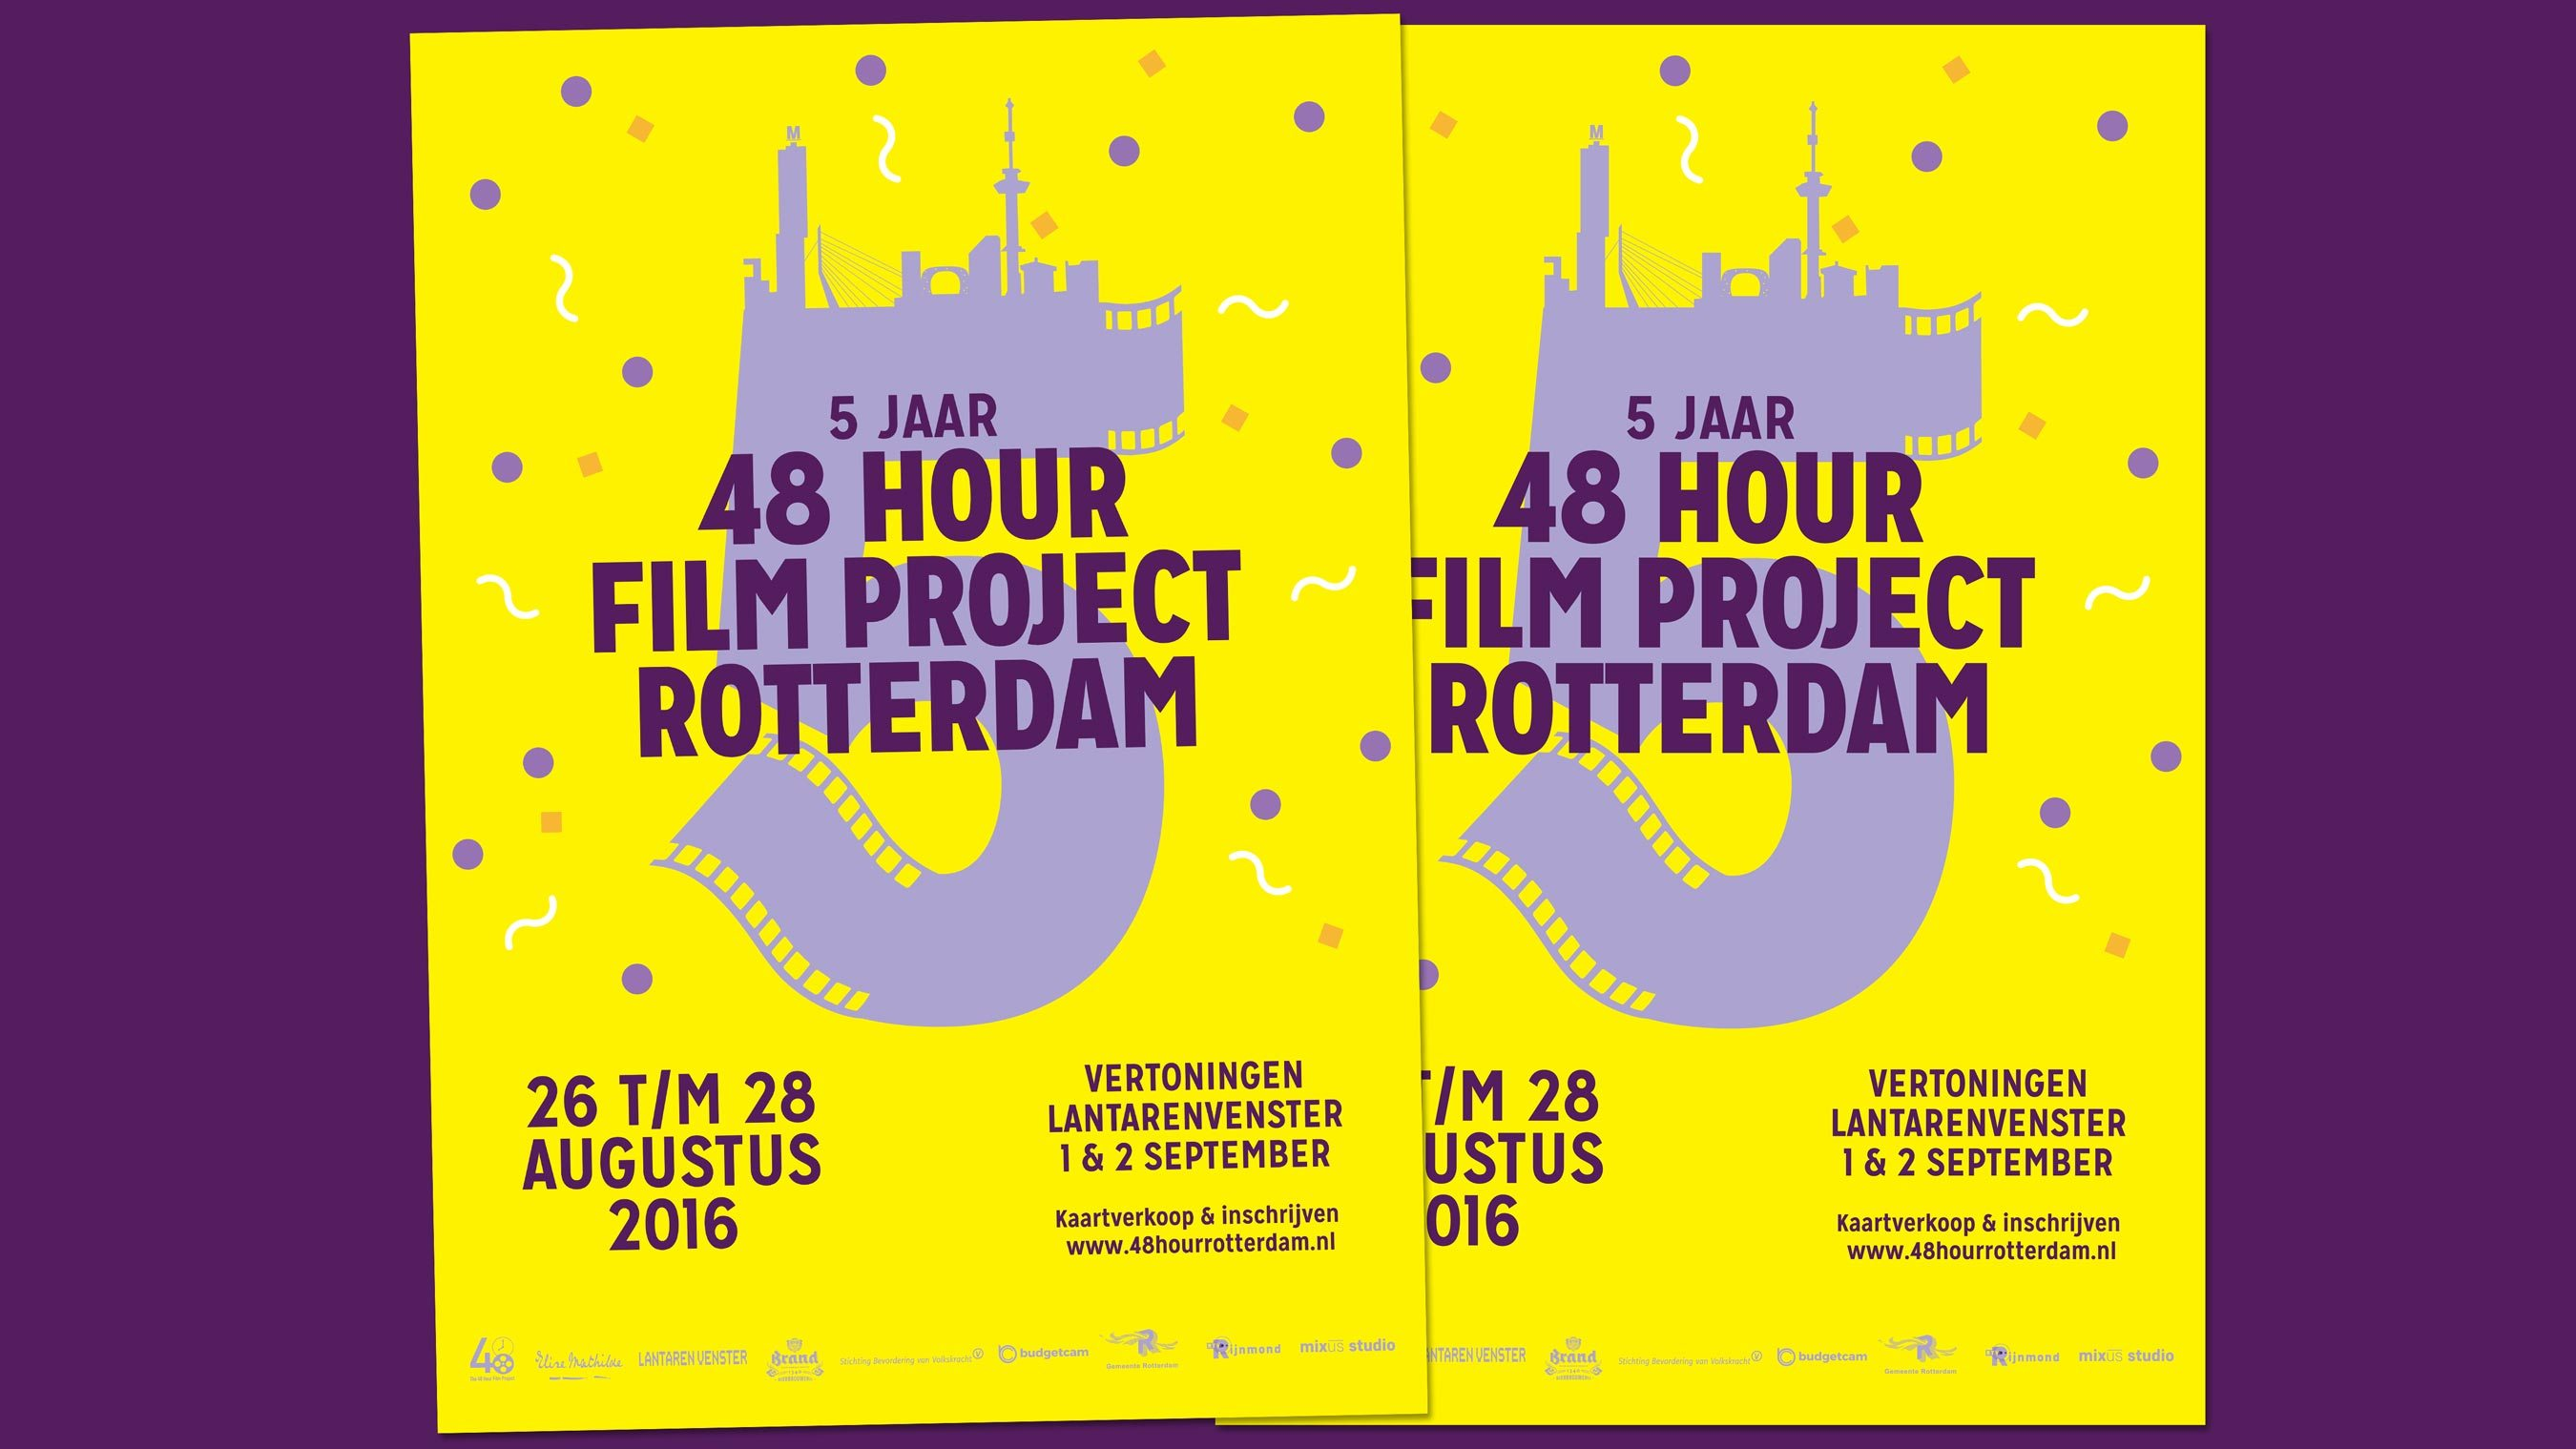 The 48 Hour Film Project Rotterdam 2016